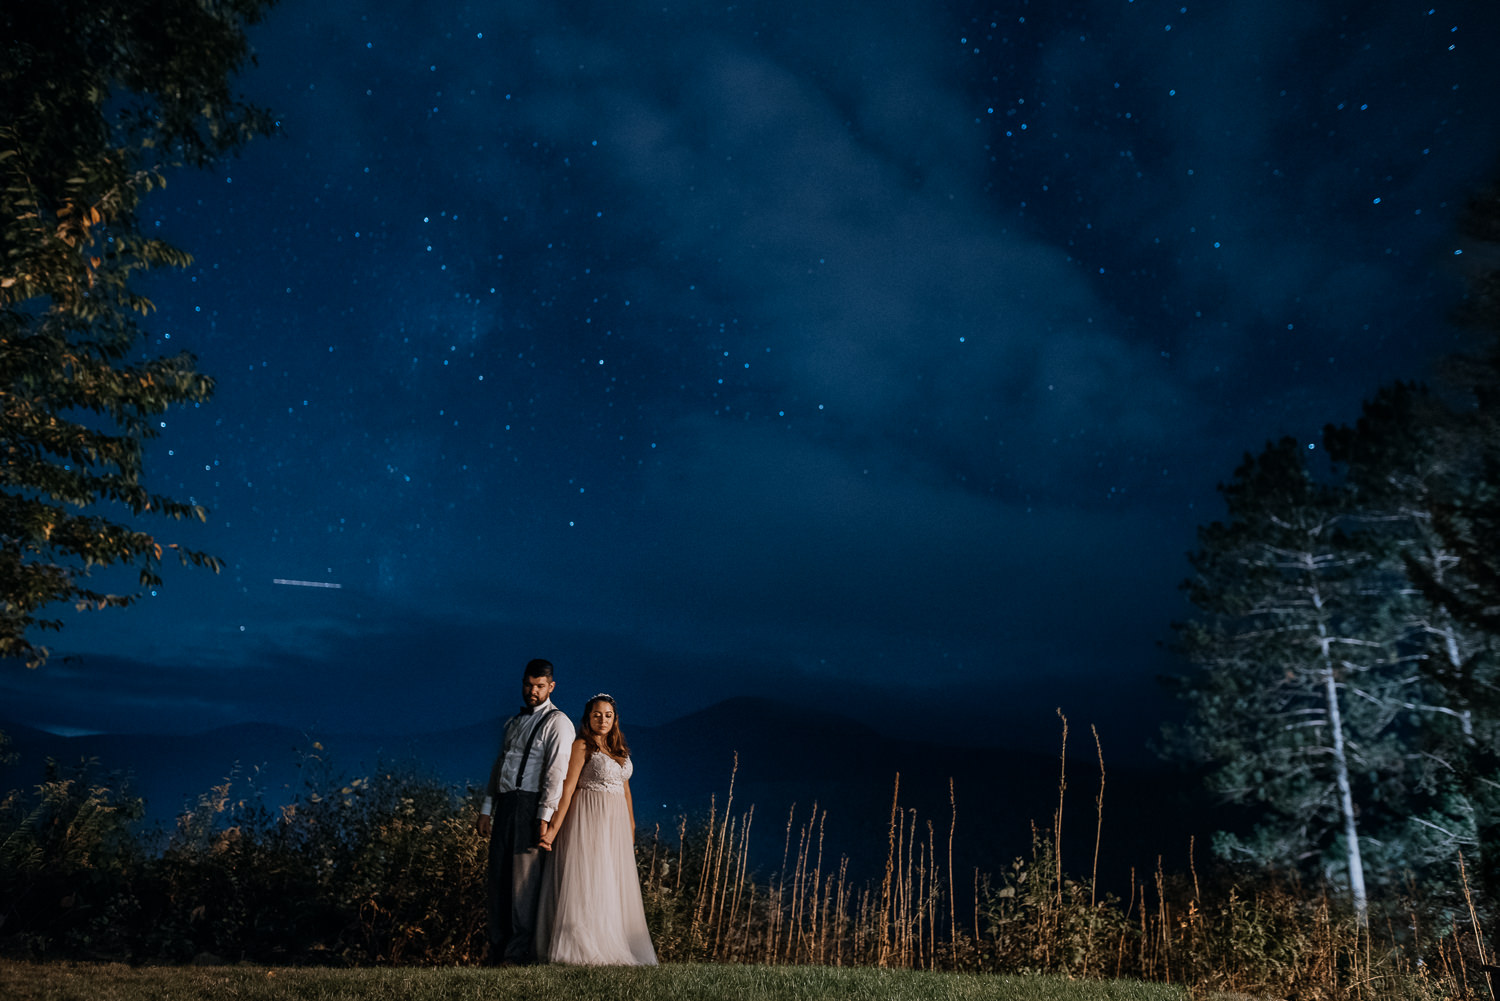 Wedding Portfolio - A selection of my favorite images